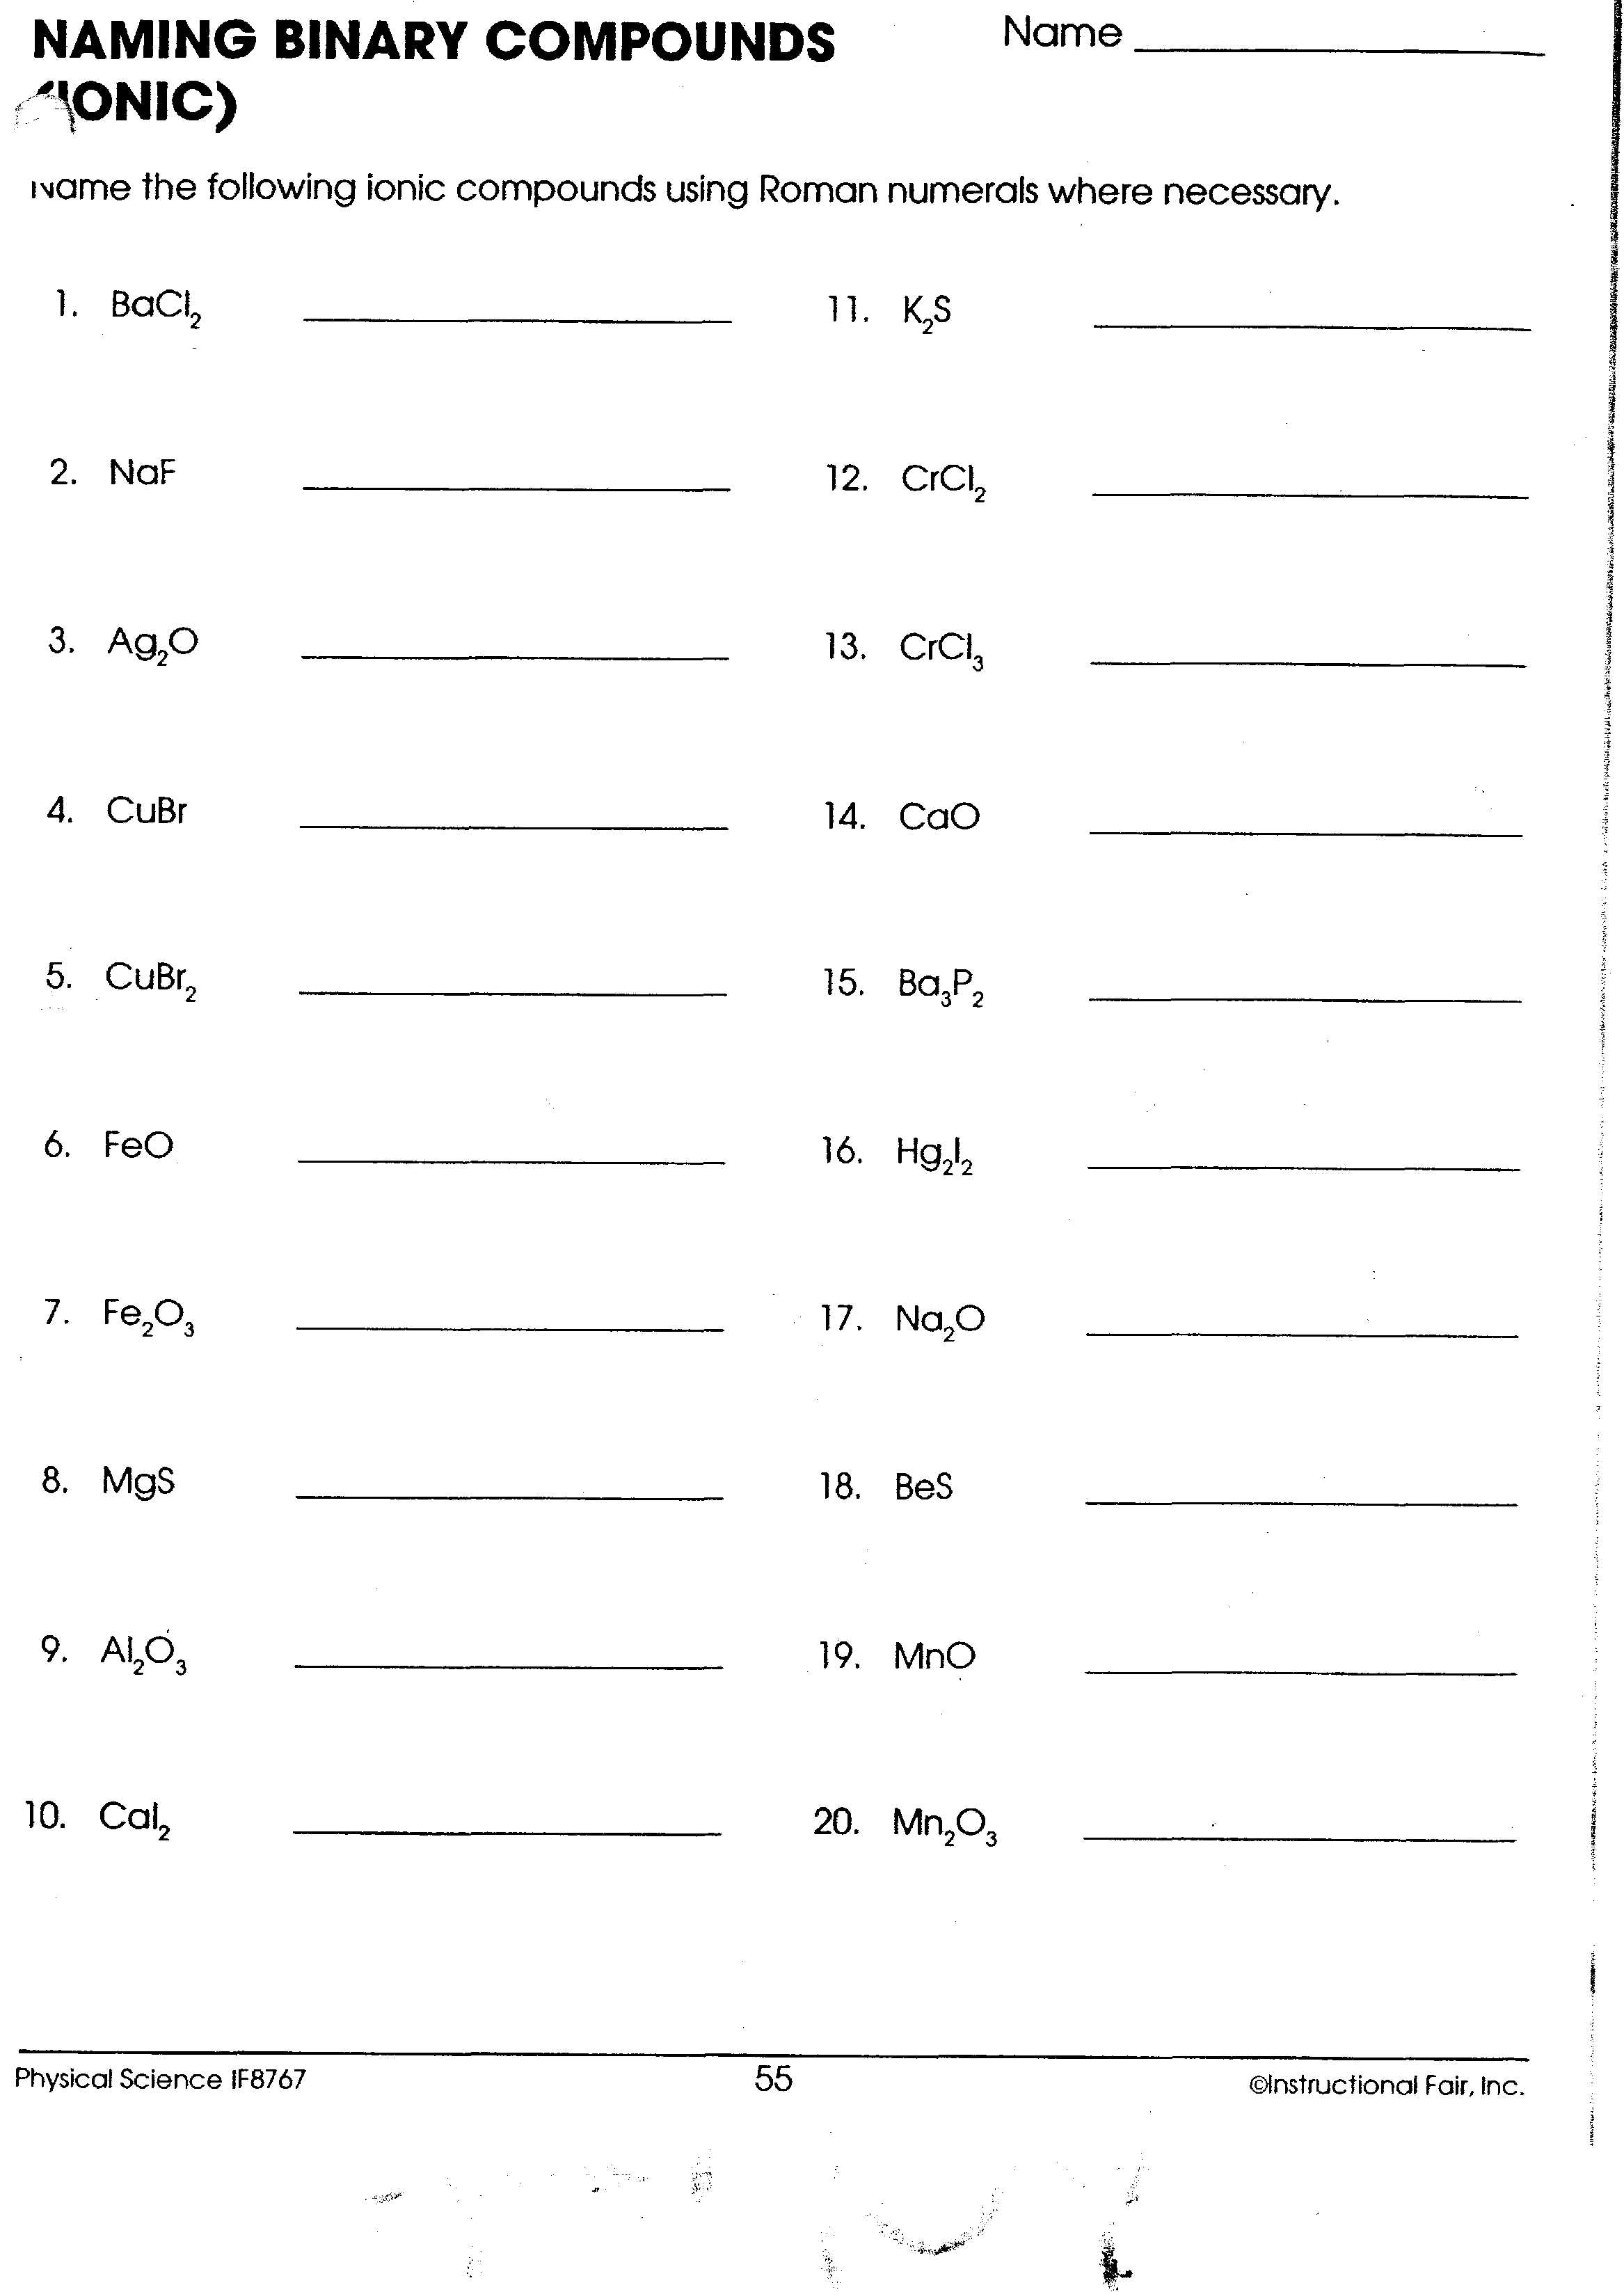 Printables Naming Ionic Compounds Worksheet binary compounds worksheet versaldobip naming laveyla com